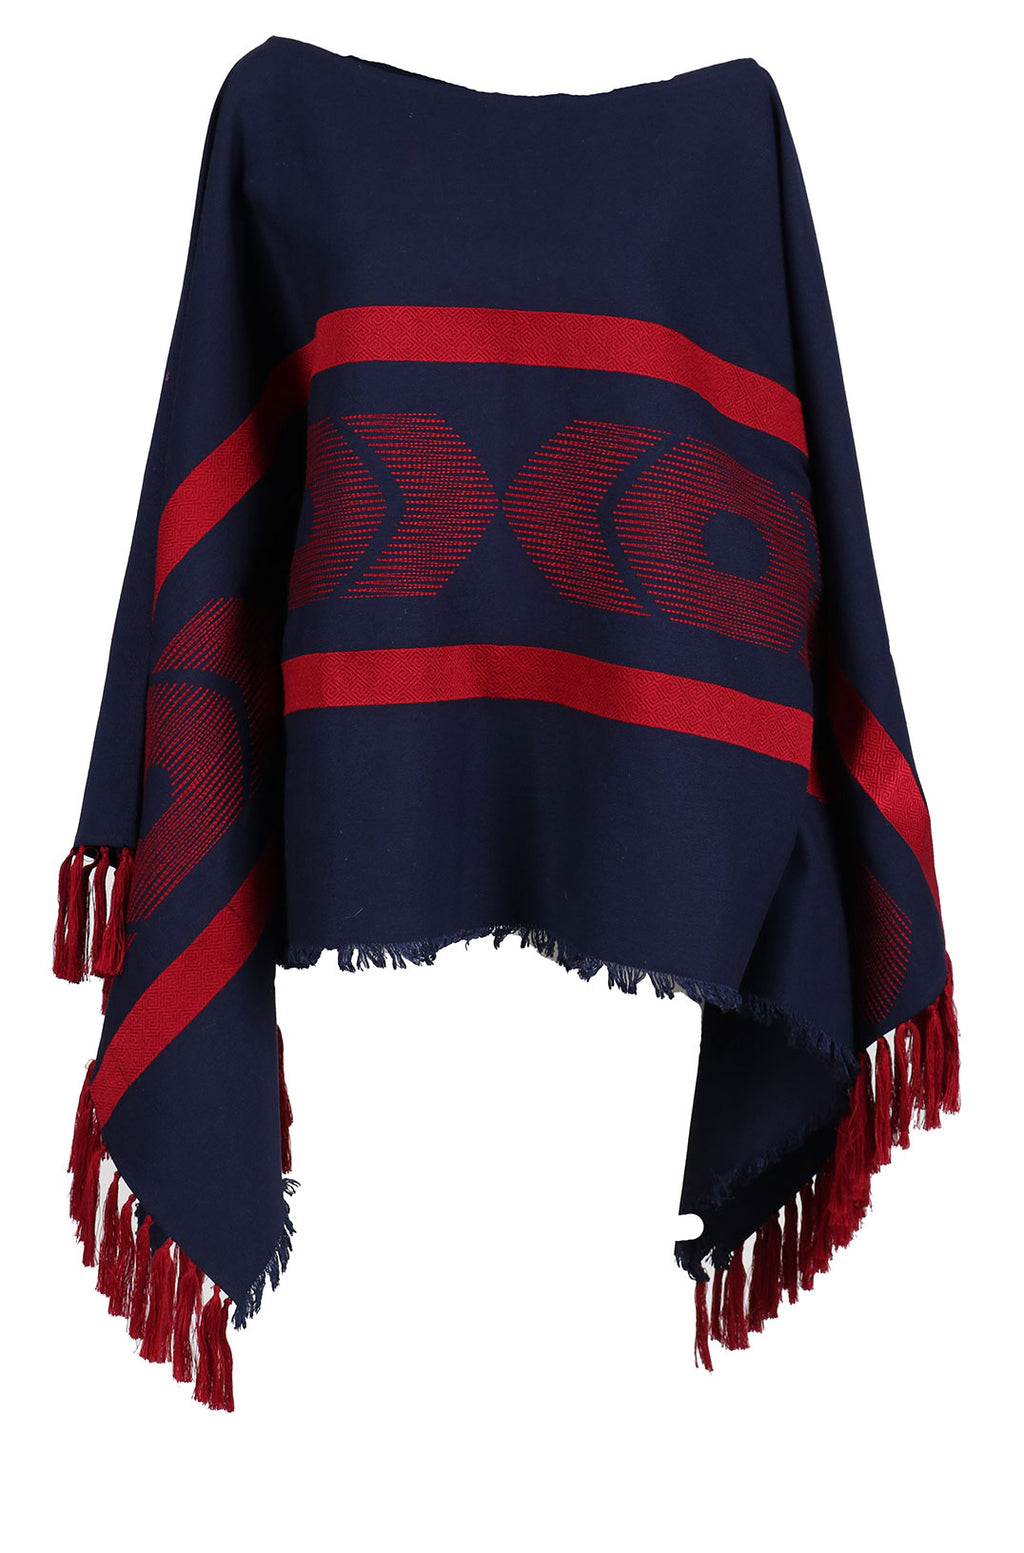 Fanm Mon PONCHO Navy Linen Red Embroidered Vyshyvanka Top Pancho ONE SIZE